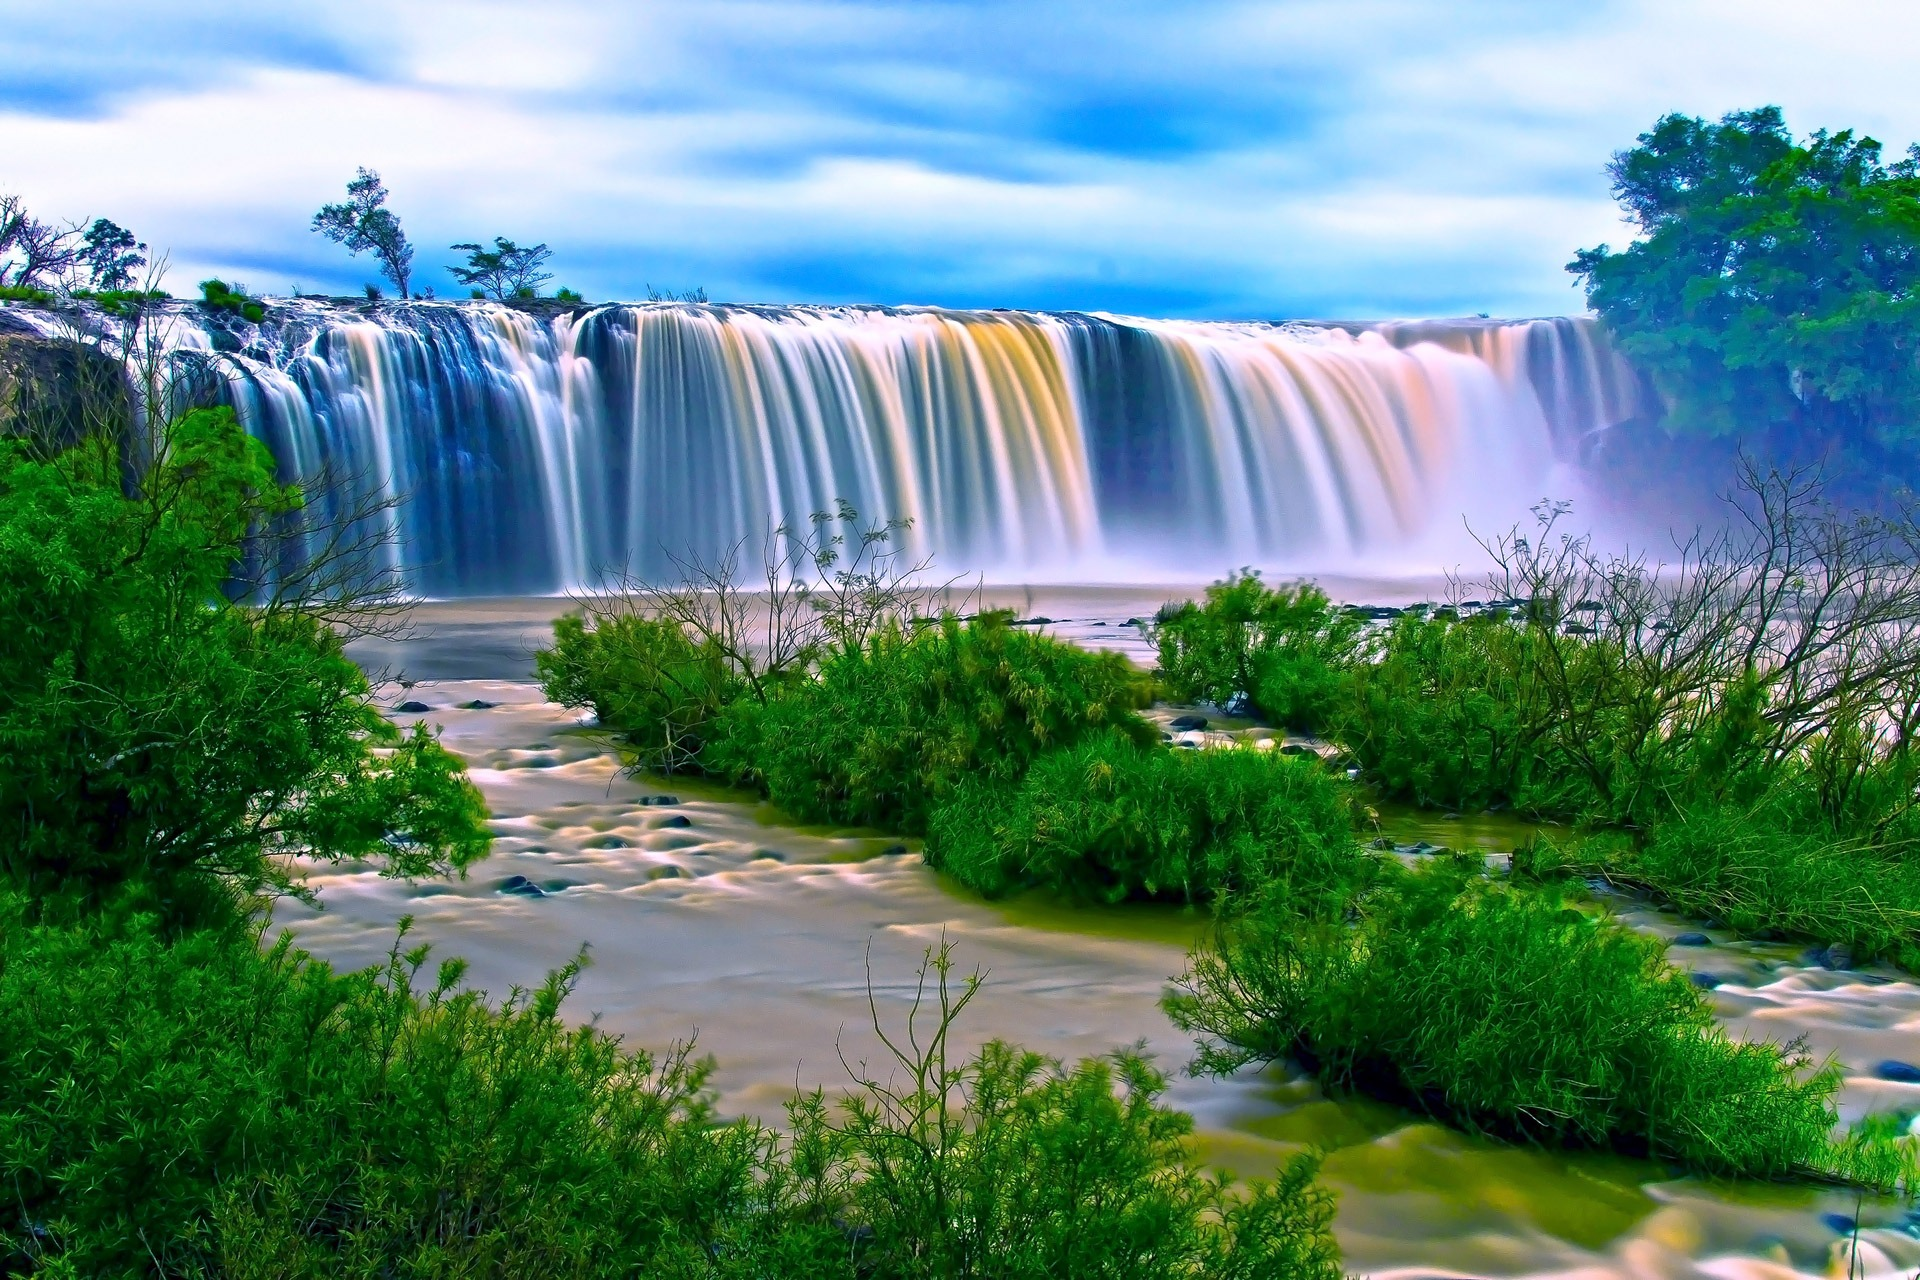 Nature Wallpapers      Pexels      Free Stock Photos Water Falls Surrounding Green Grass during Daytime